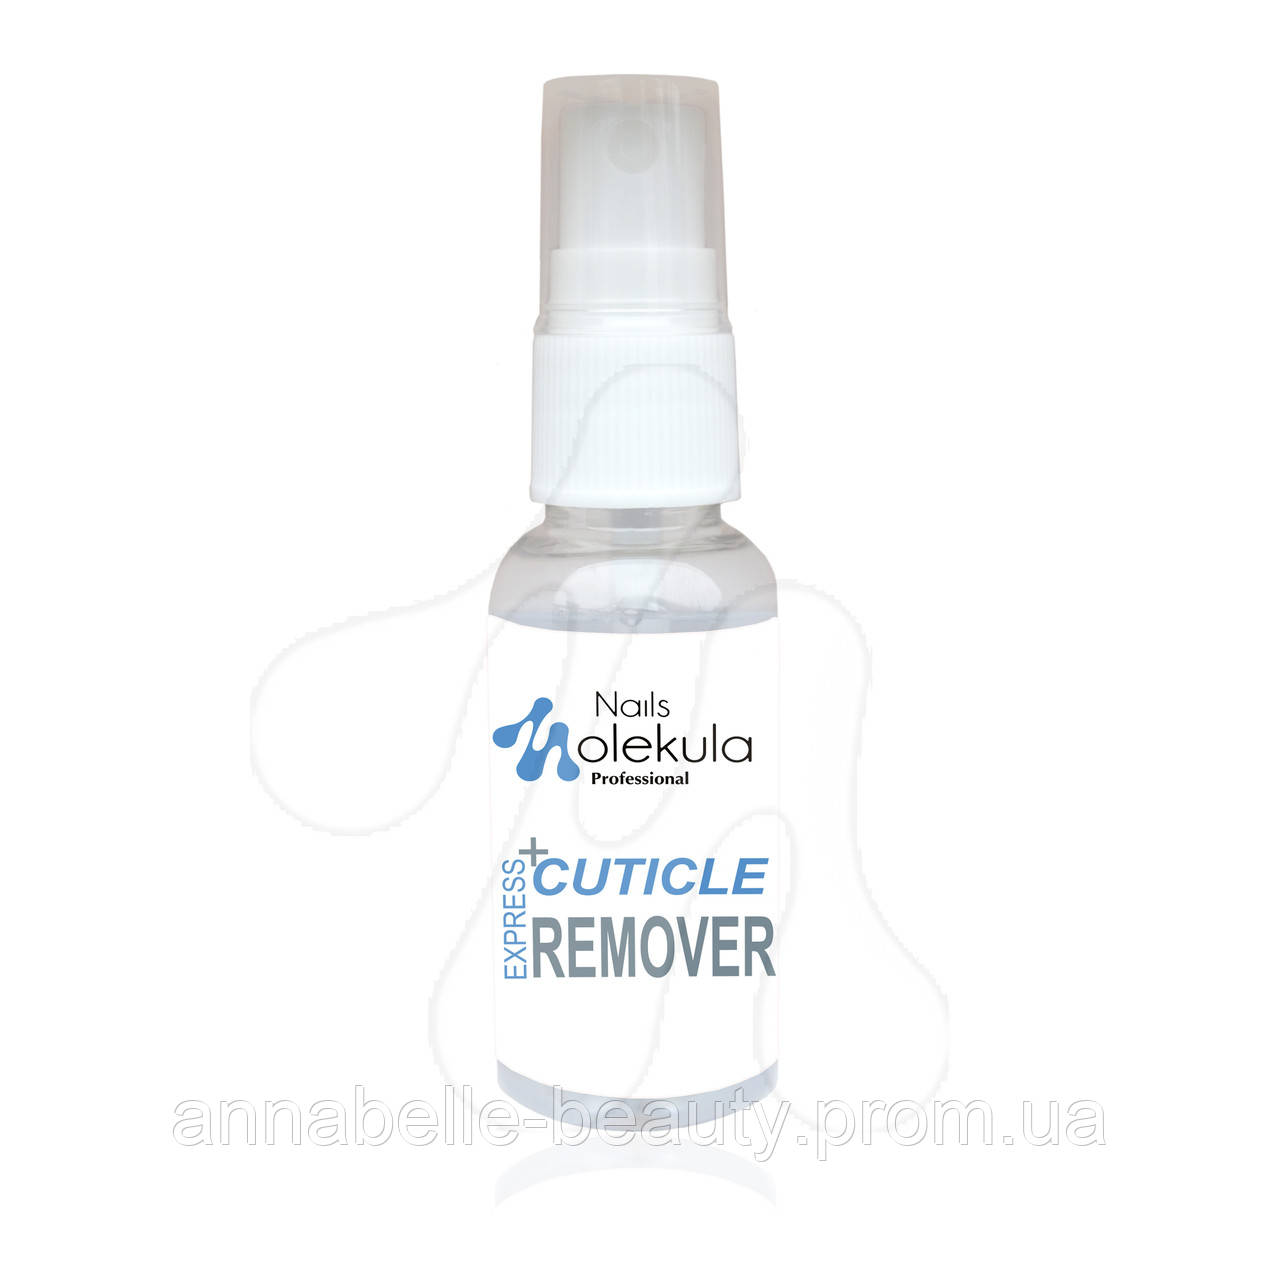 Molekula cuticle remover spray 30 мл